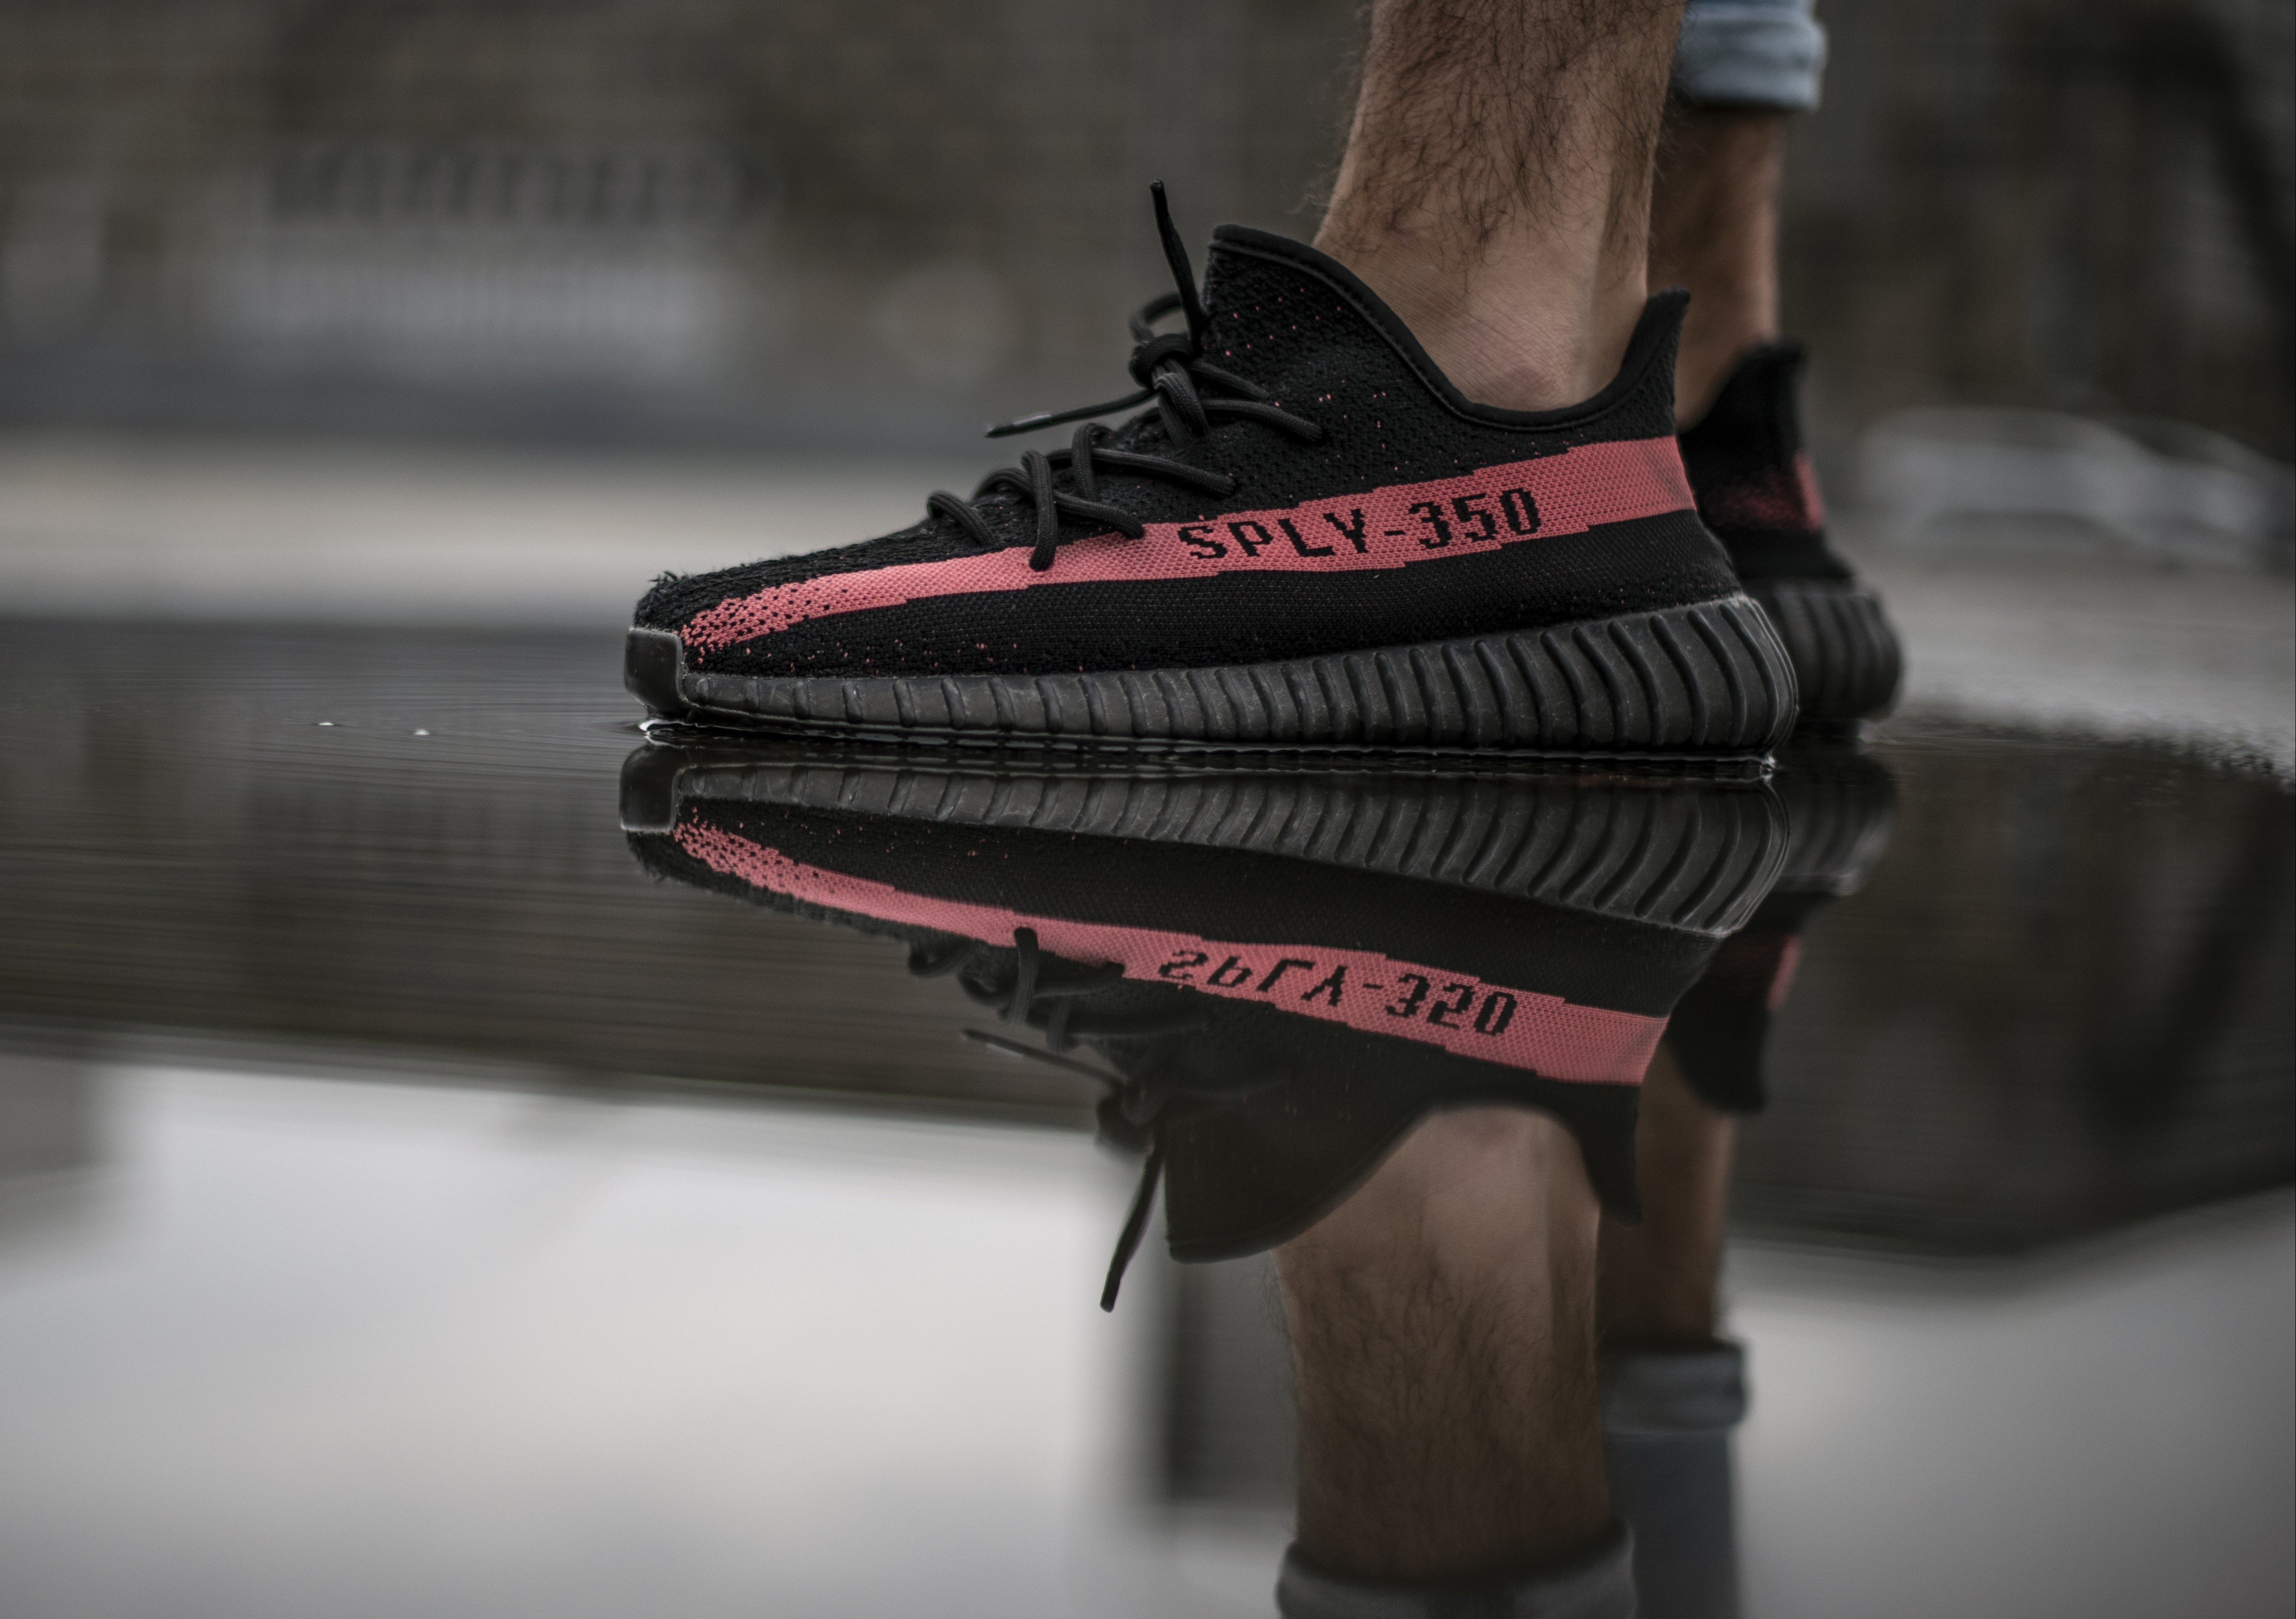 68198327928c1 How Adidas captured the hearts of Chinese millennials with the Yeezy shoe